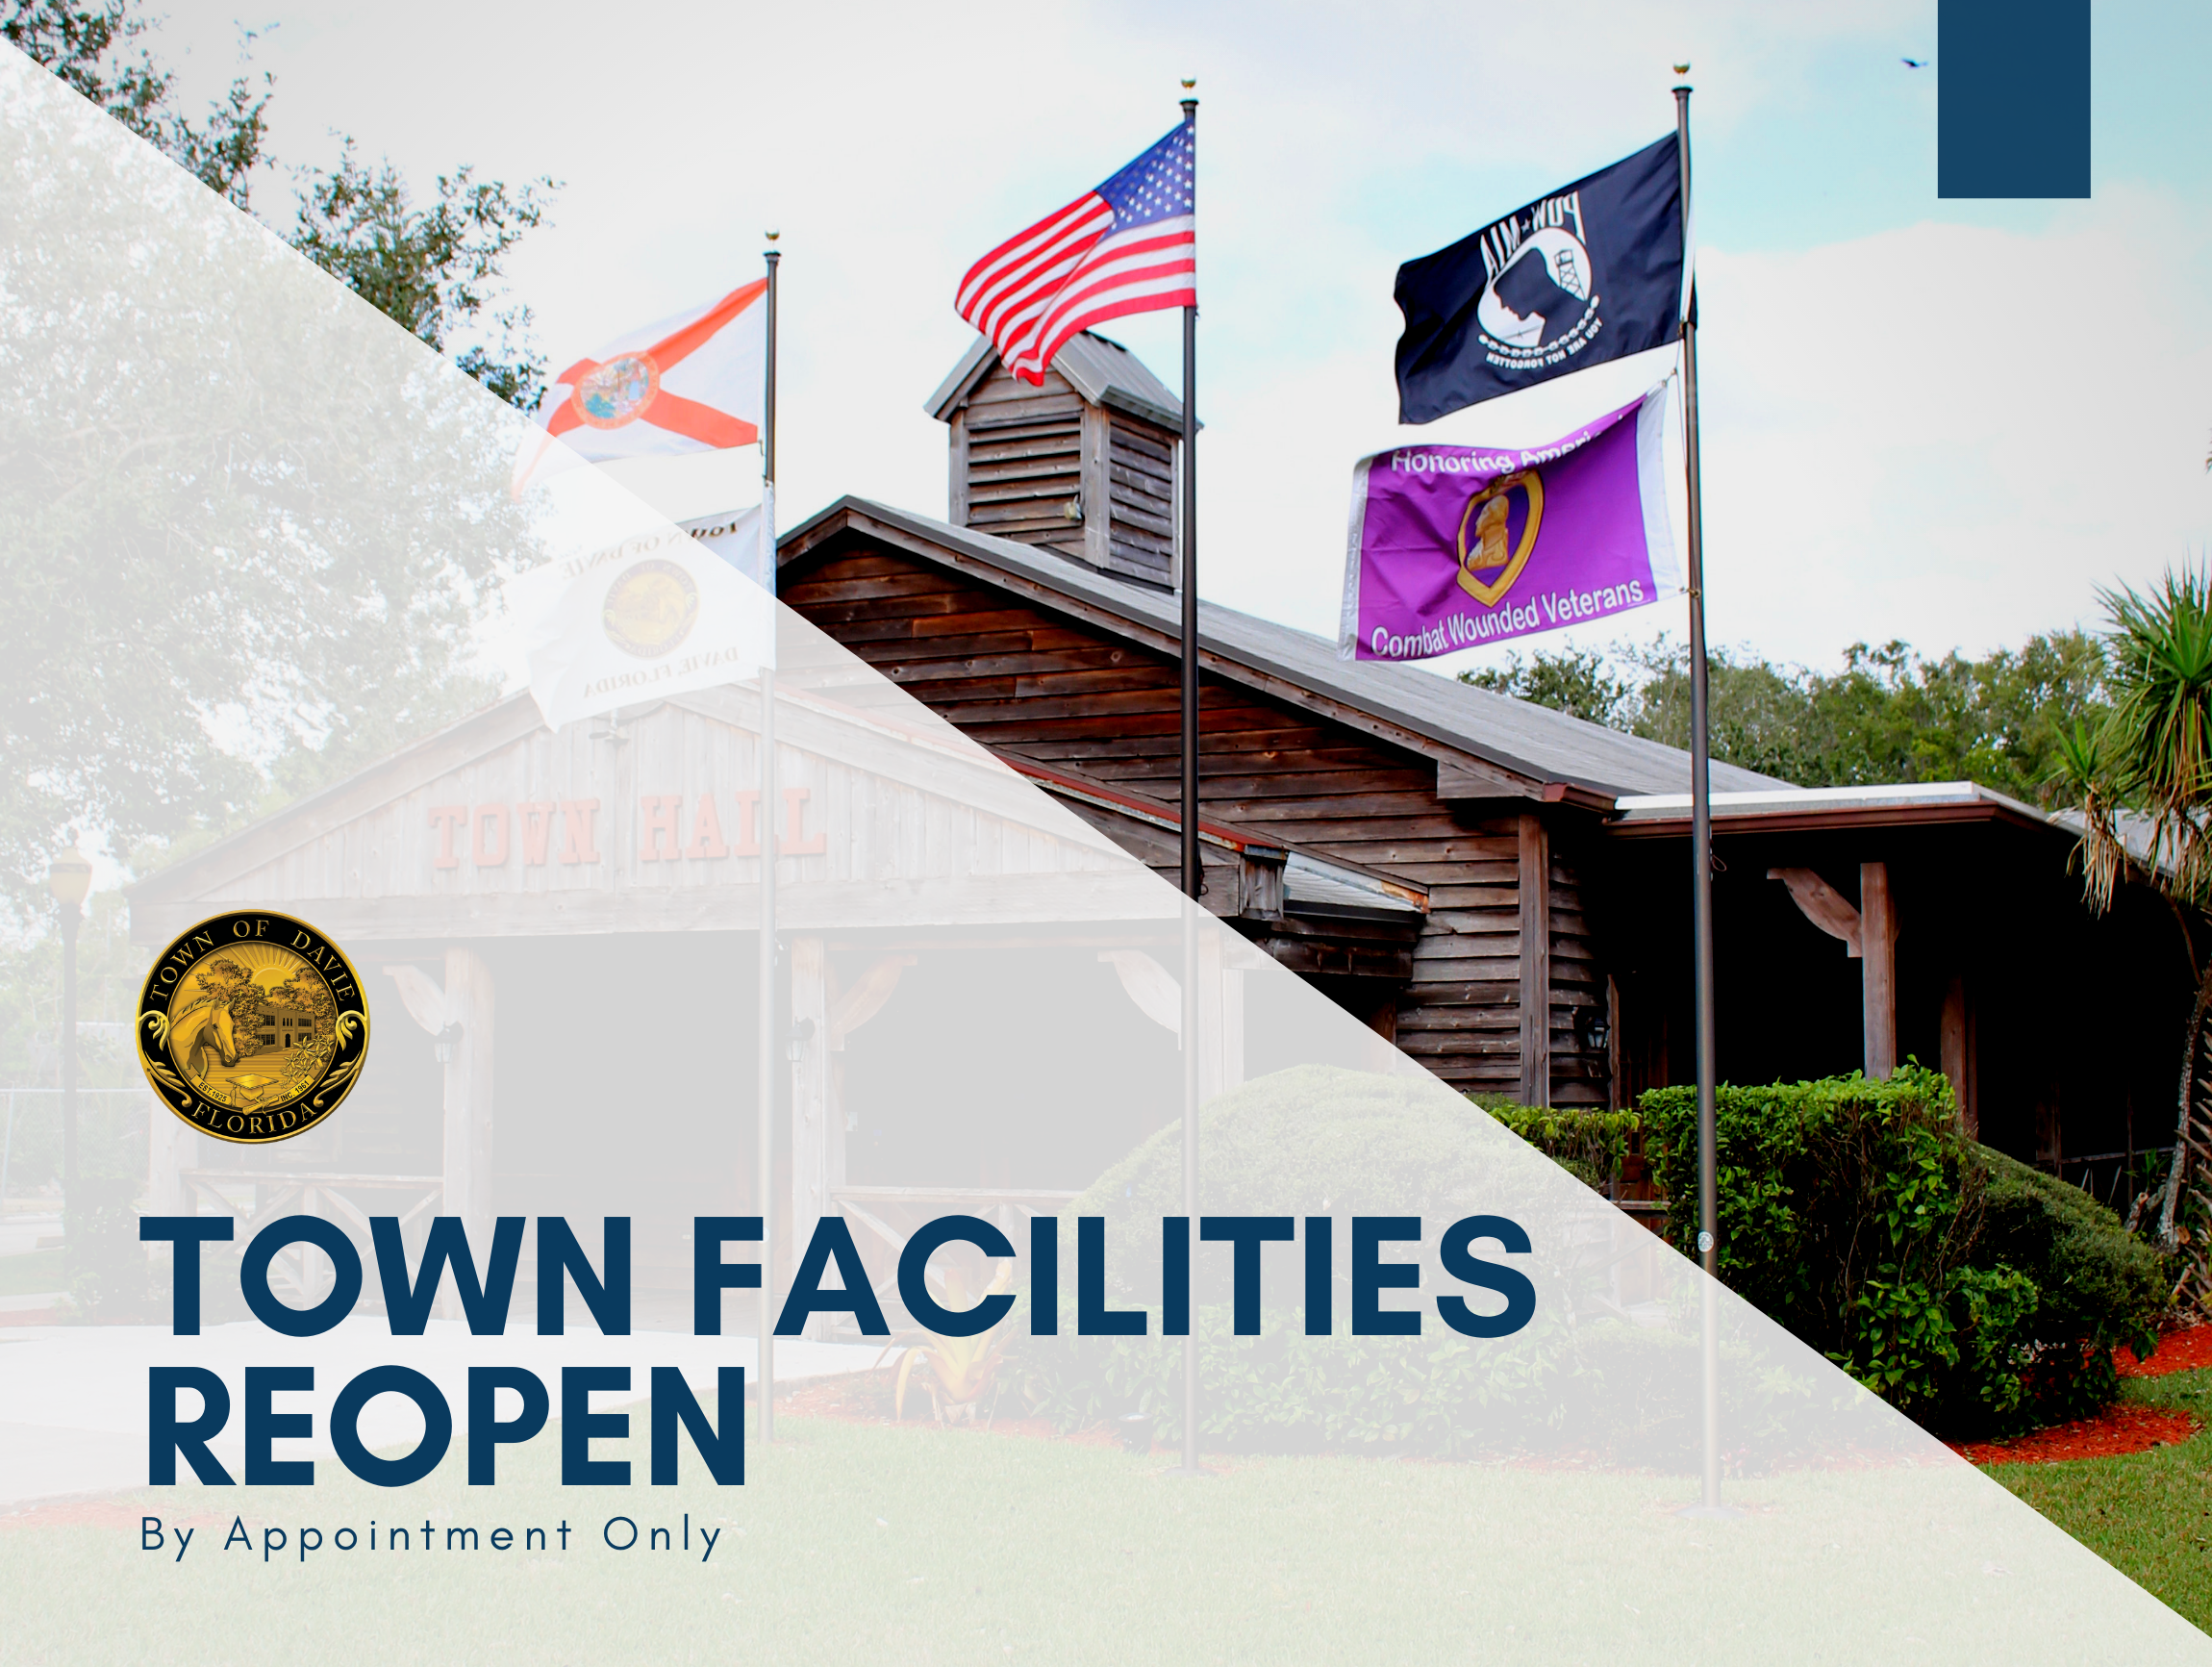 Town Facilities Reopen